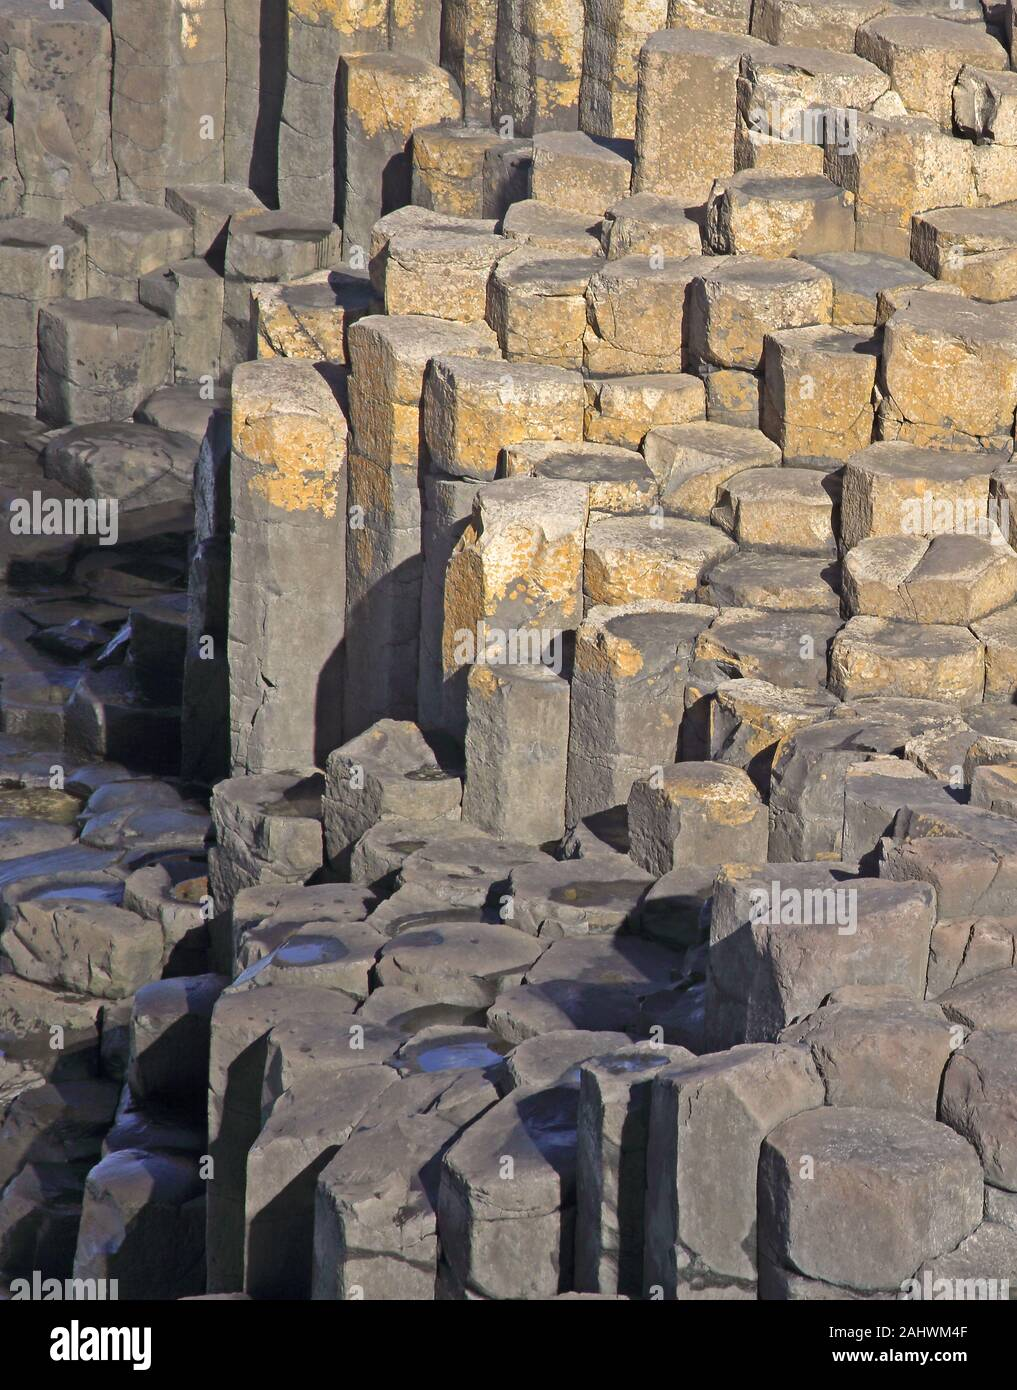 Massive basalt columns and stepping stones of the Giant's Causeway, County Antrim, Northern Ireland, UK. Stock Photo